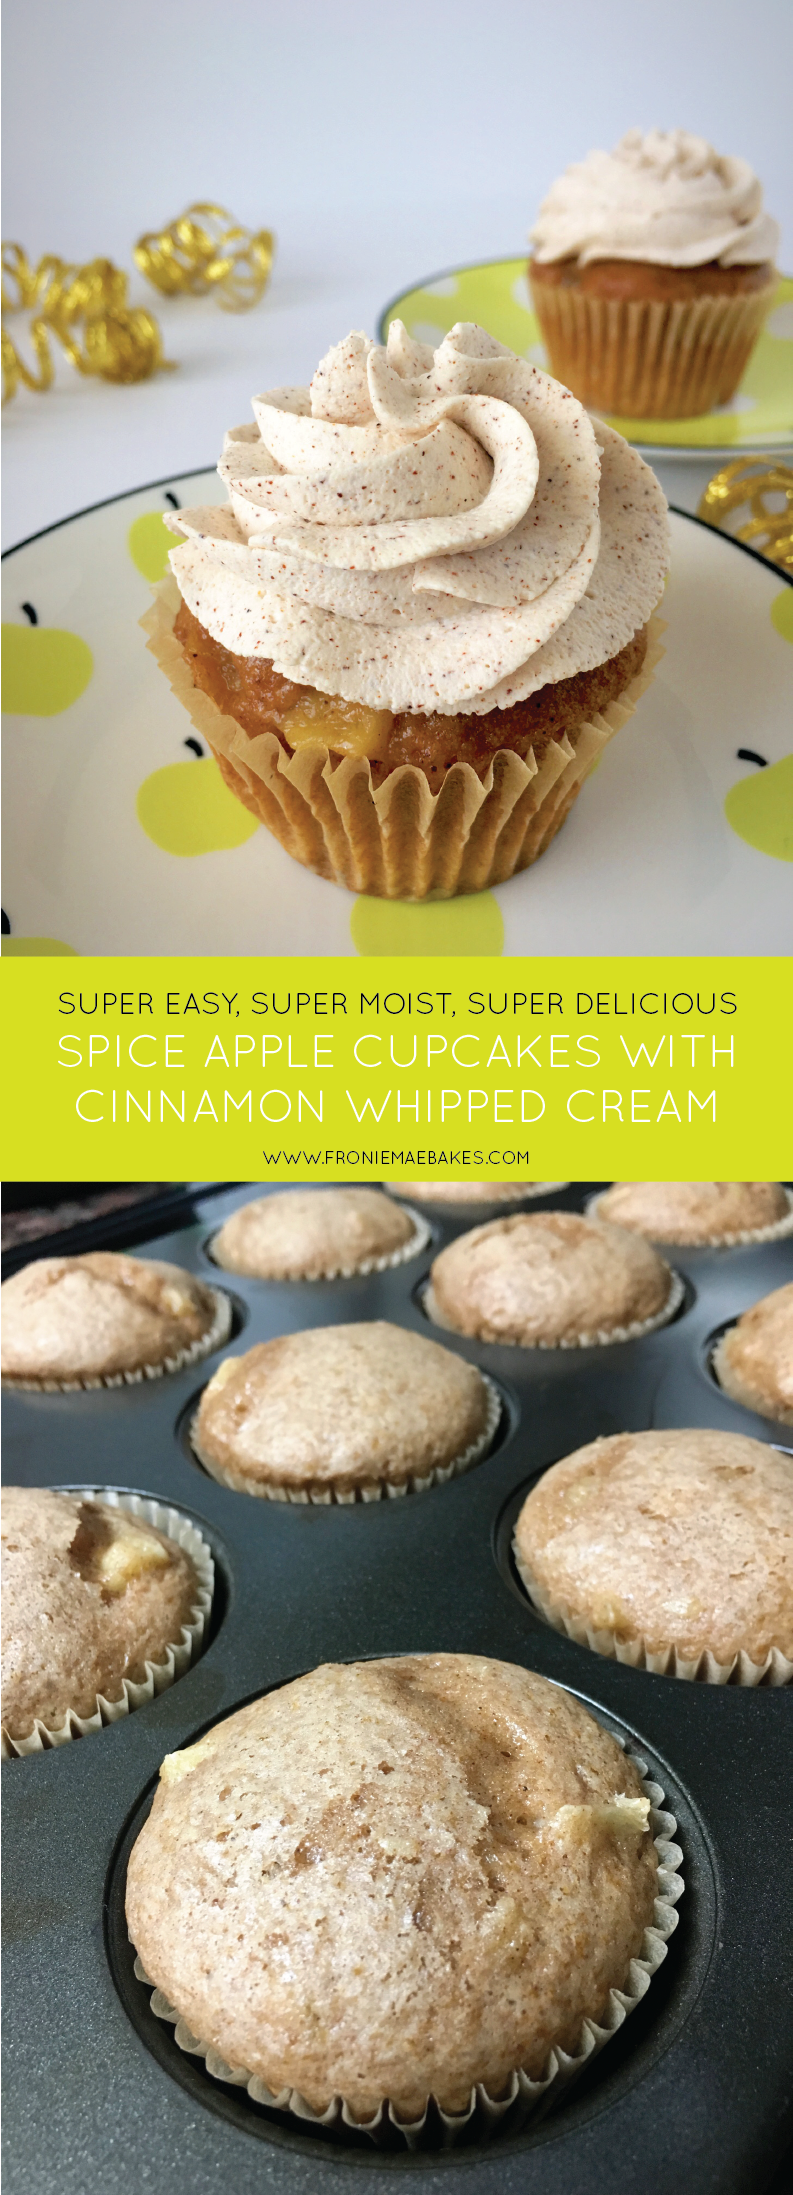 Make these super moist spiced apple cupcakes with cinnamon whipped cream today. Find the recipe on www.FronieMaeBakes.com